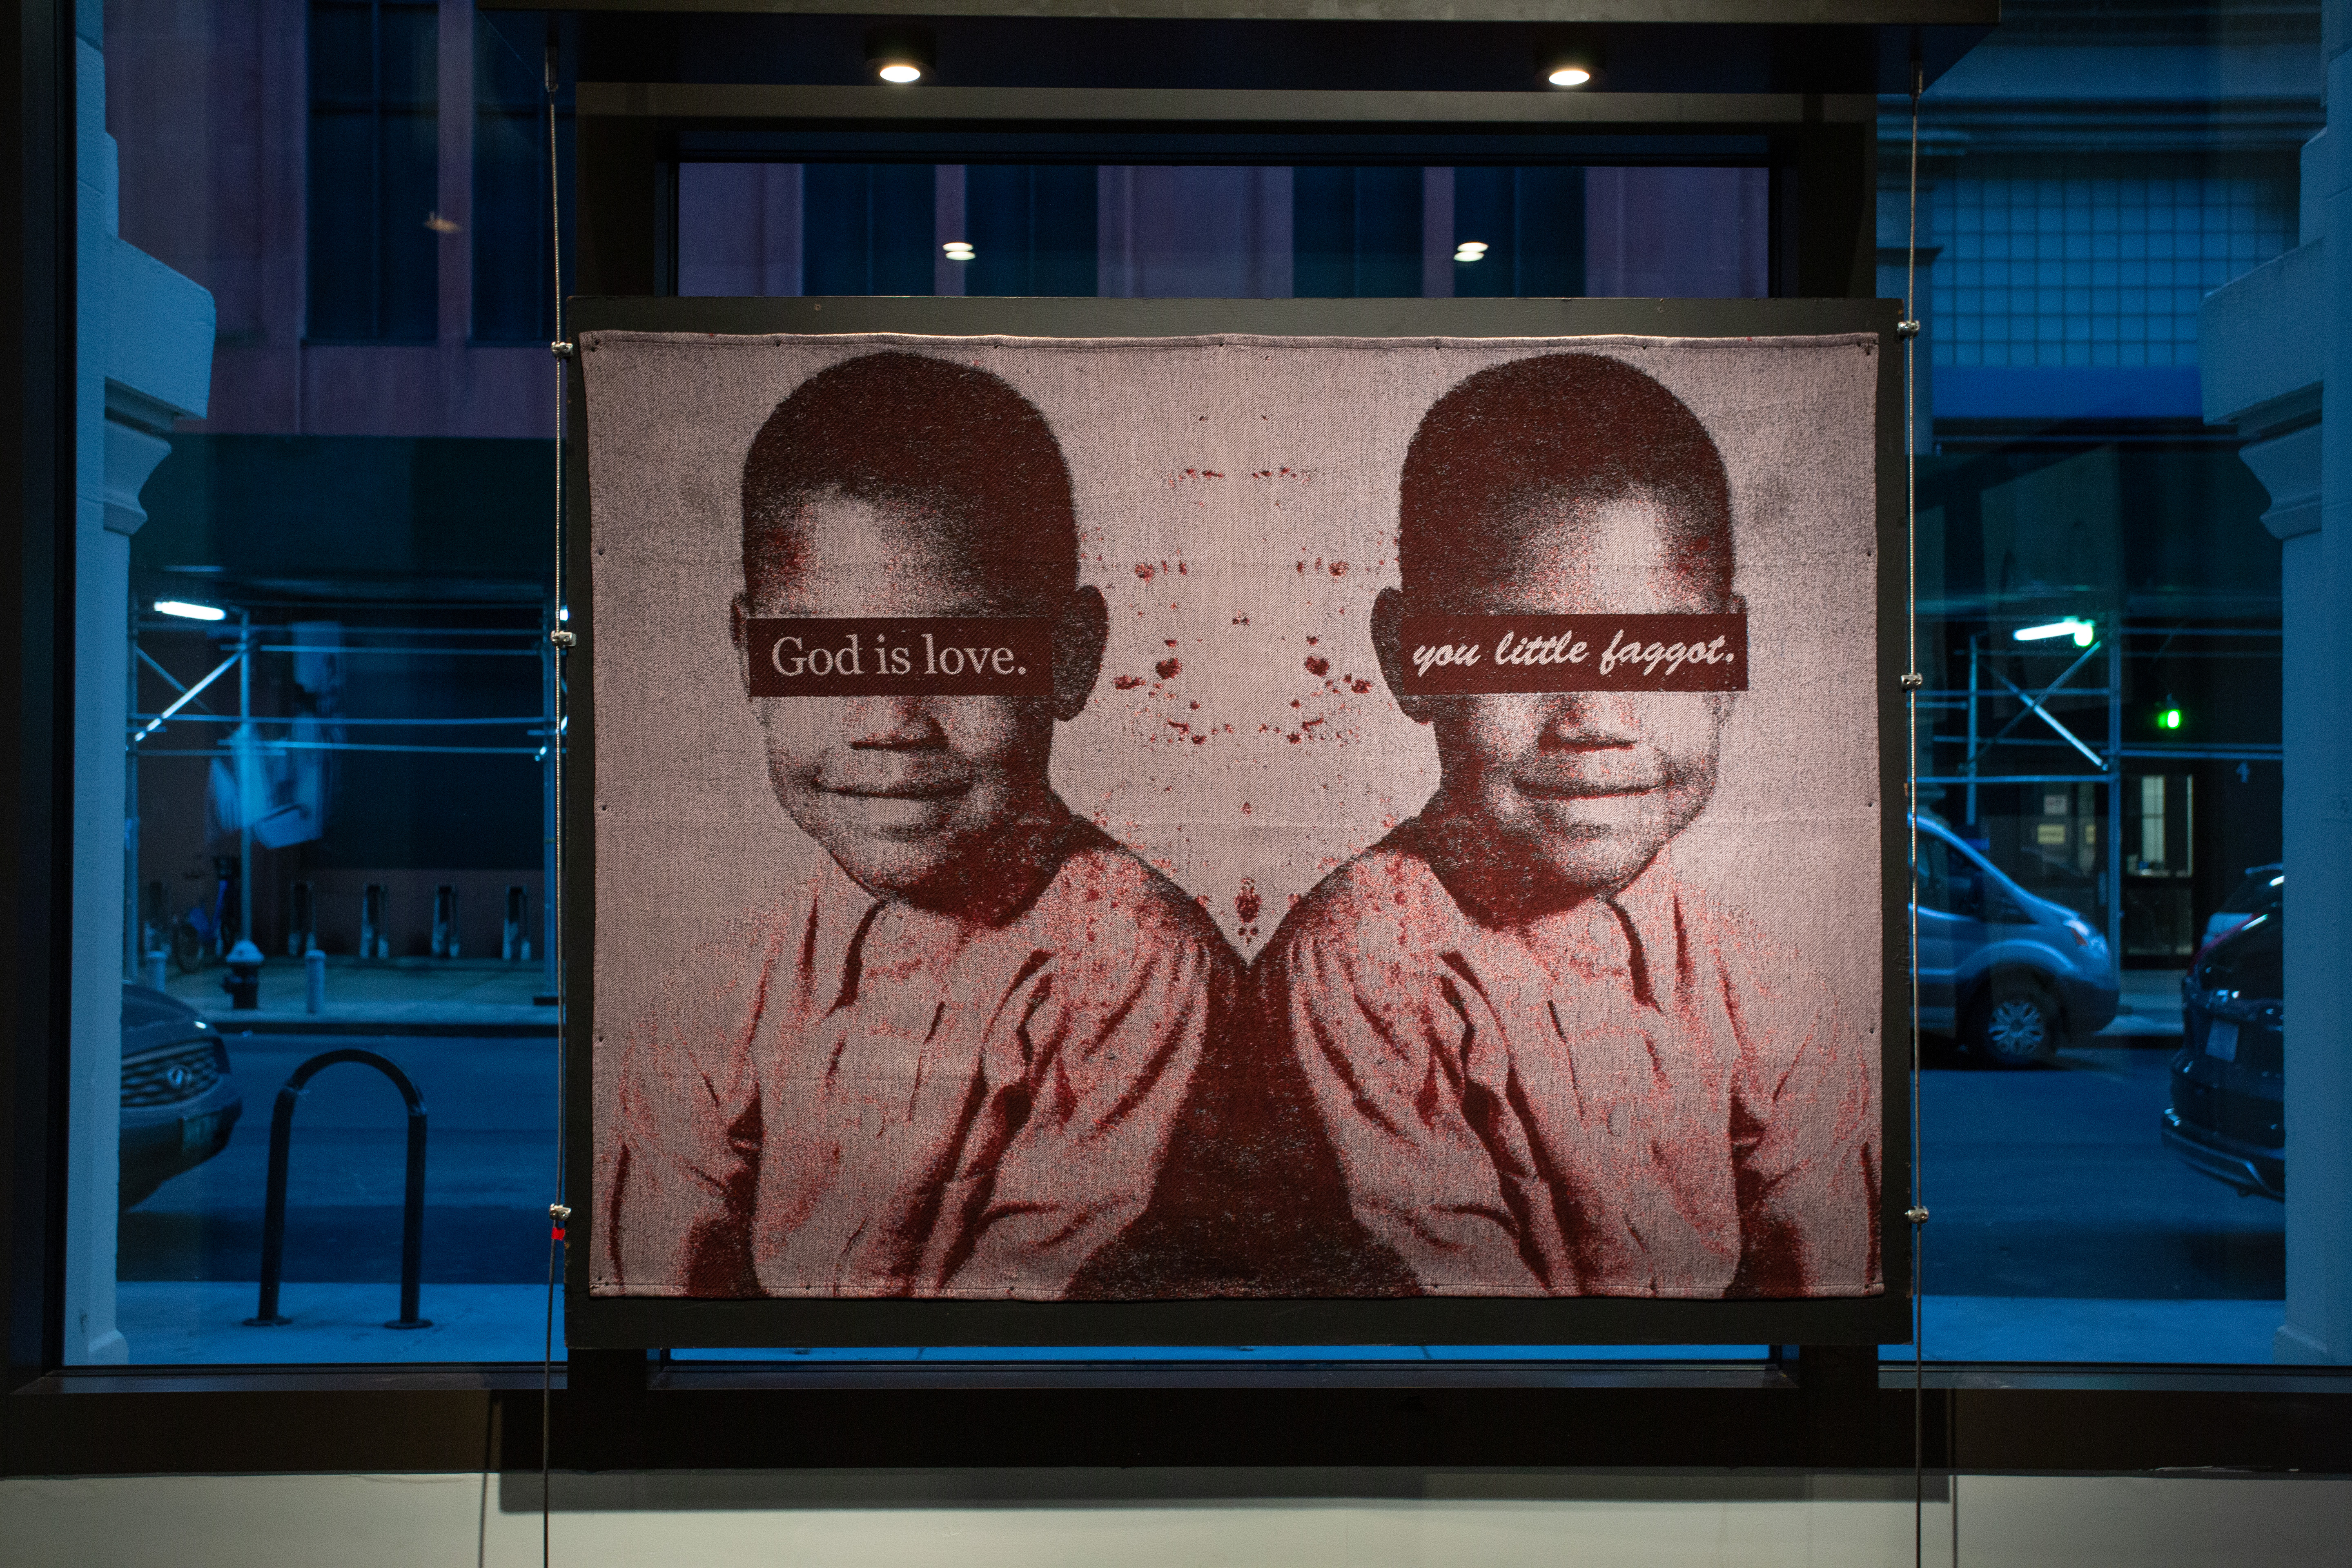 """Tapestry with a mirrored image of a young black boy. Over both sets of eyes, a black bar reads """"God is love. You little faggot."""""""